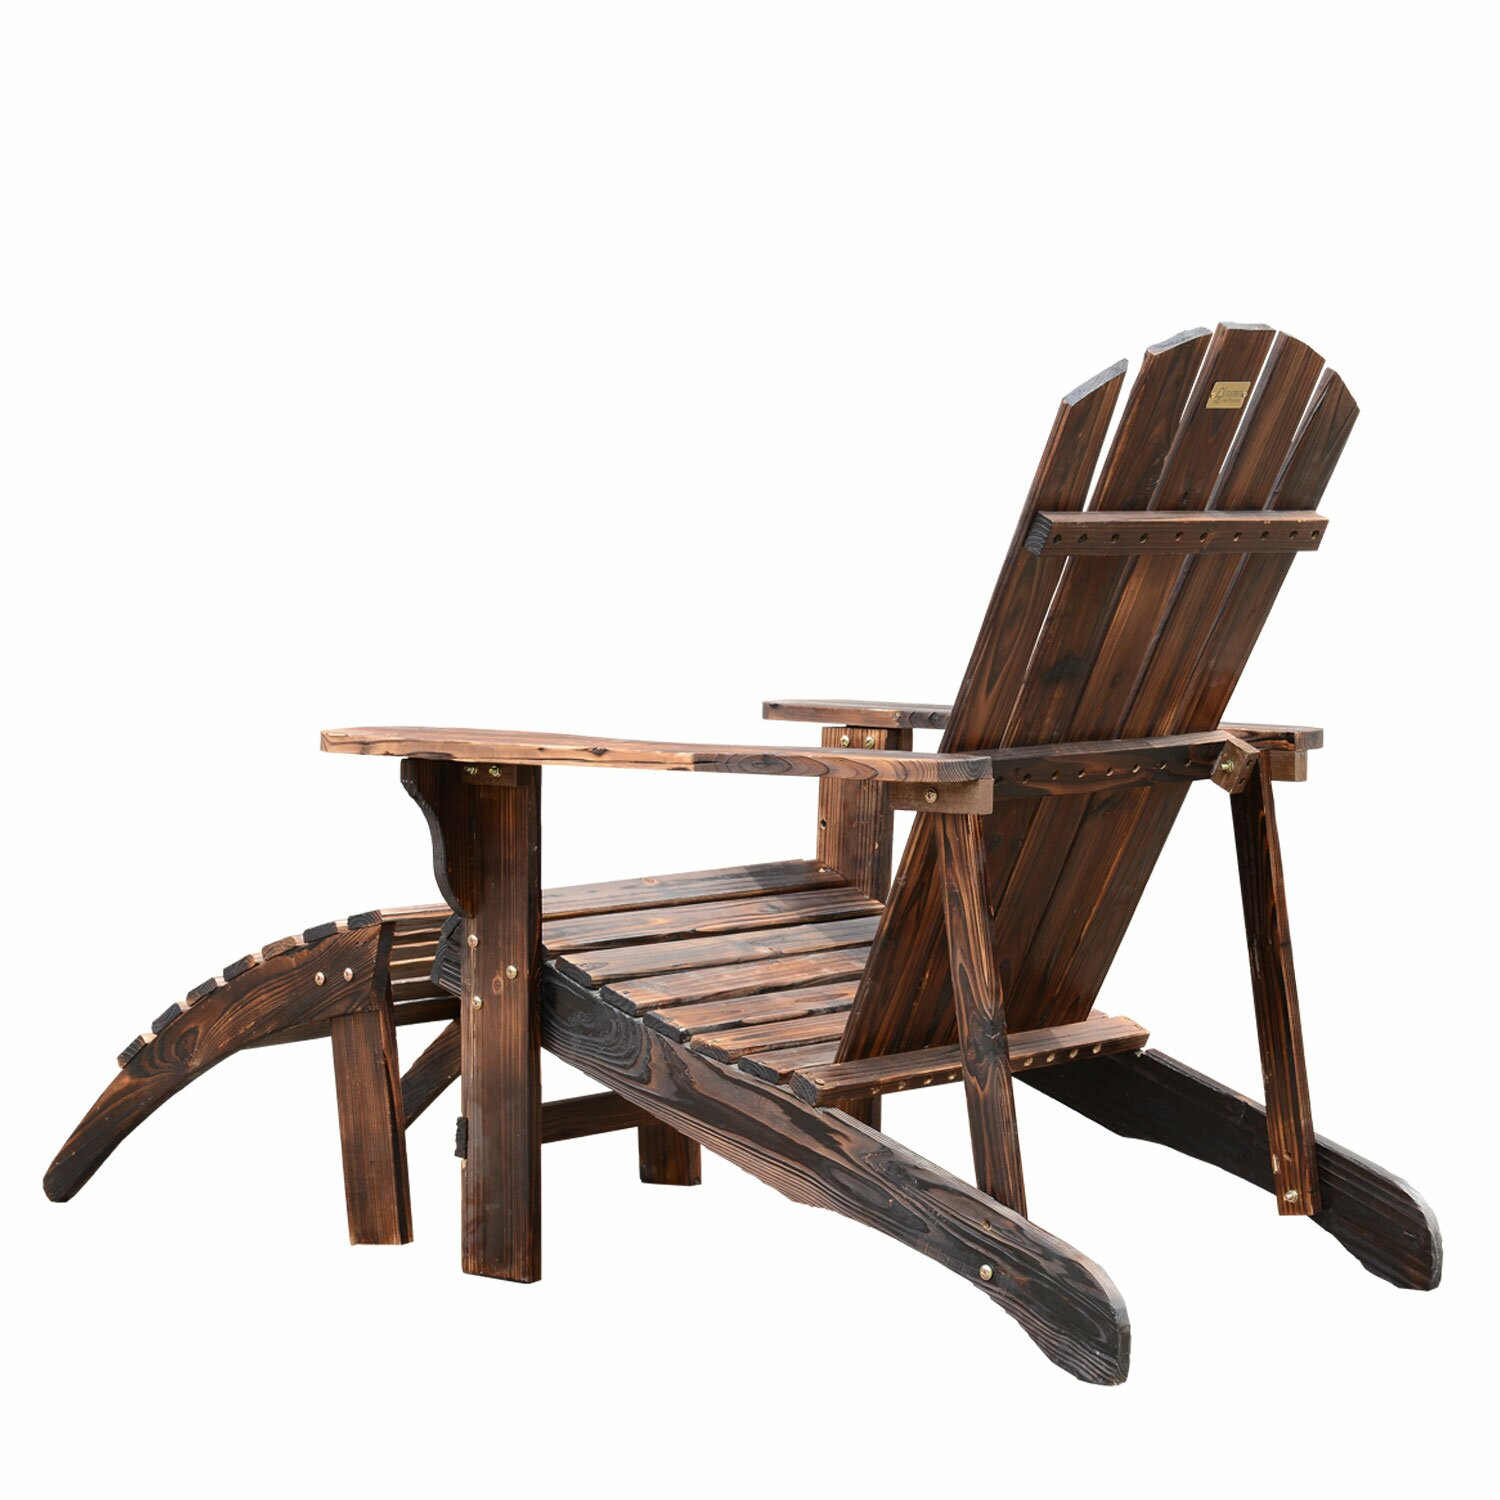 Outsunny adirondack chair with ottoman reviews wayfair for Chair with ottoman